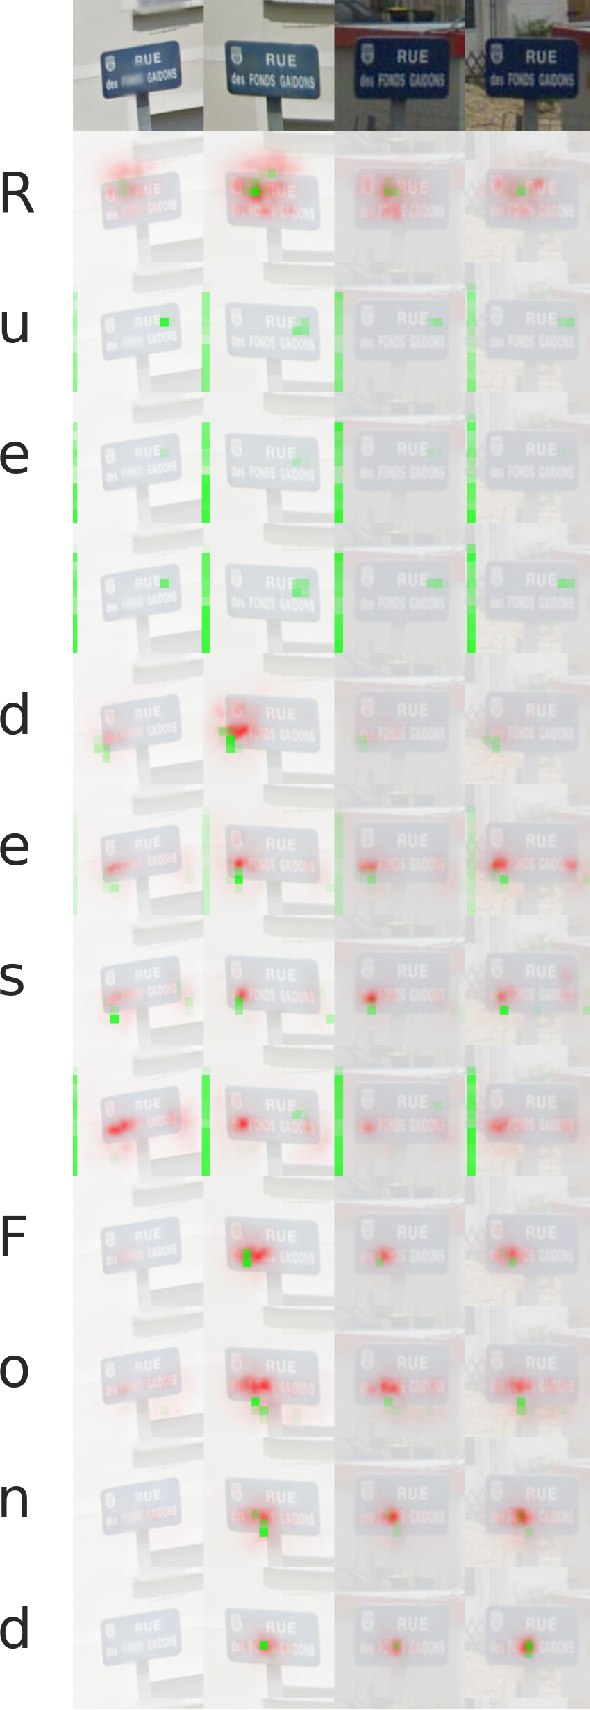 Figure 3 for Attention-based Extraction of Structured Information from Street View Imagery